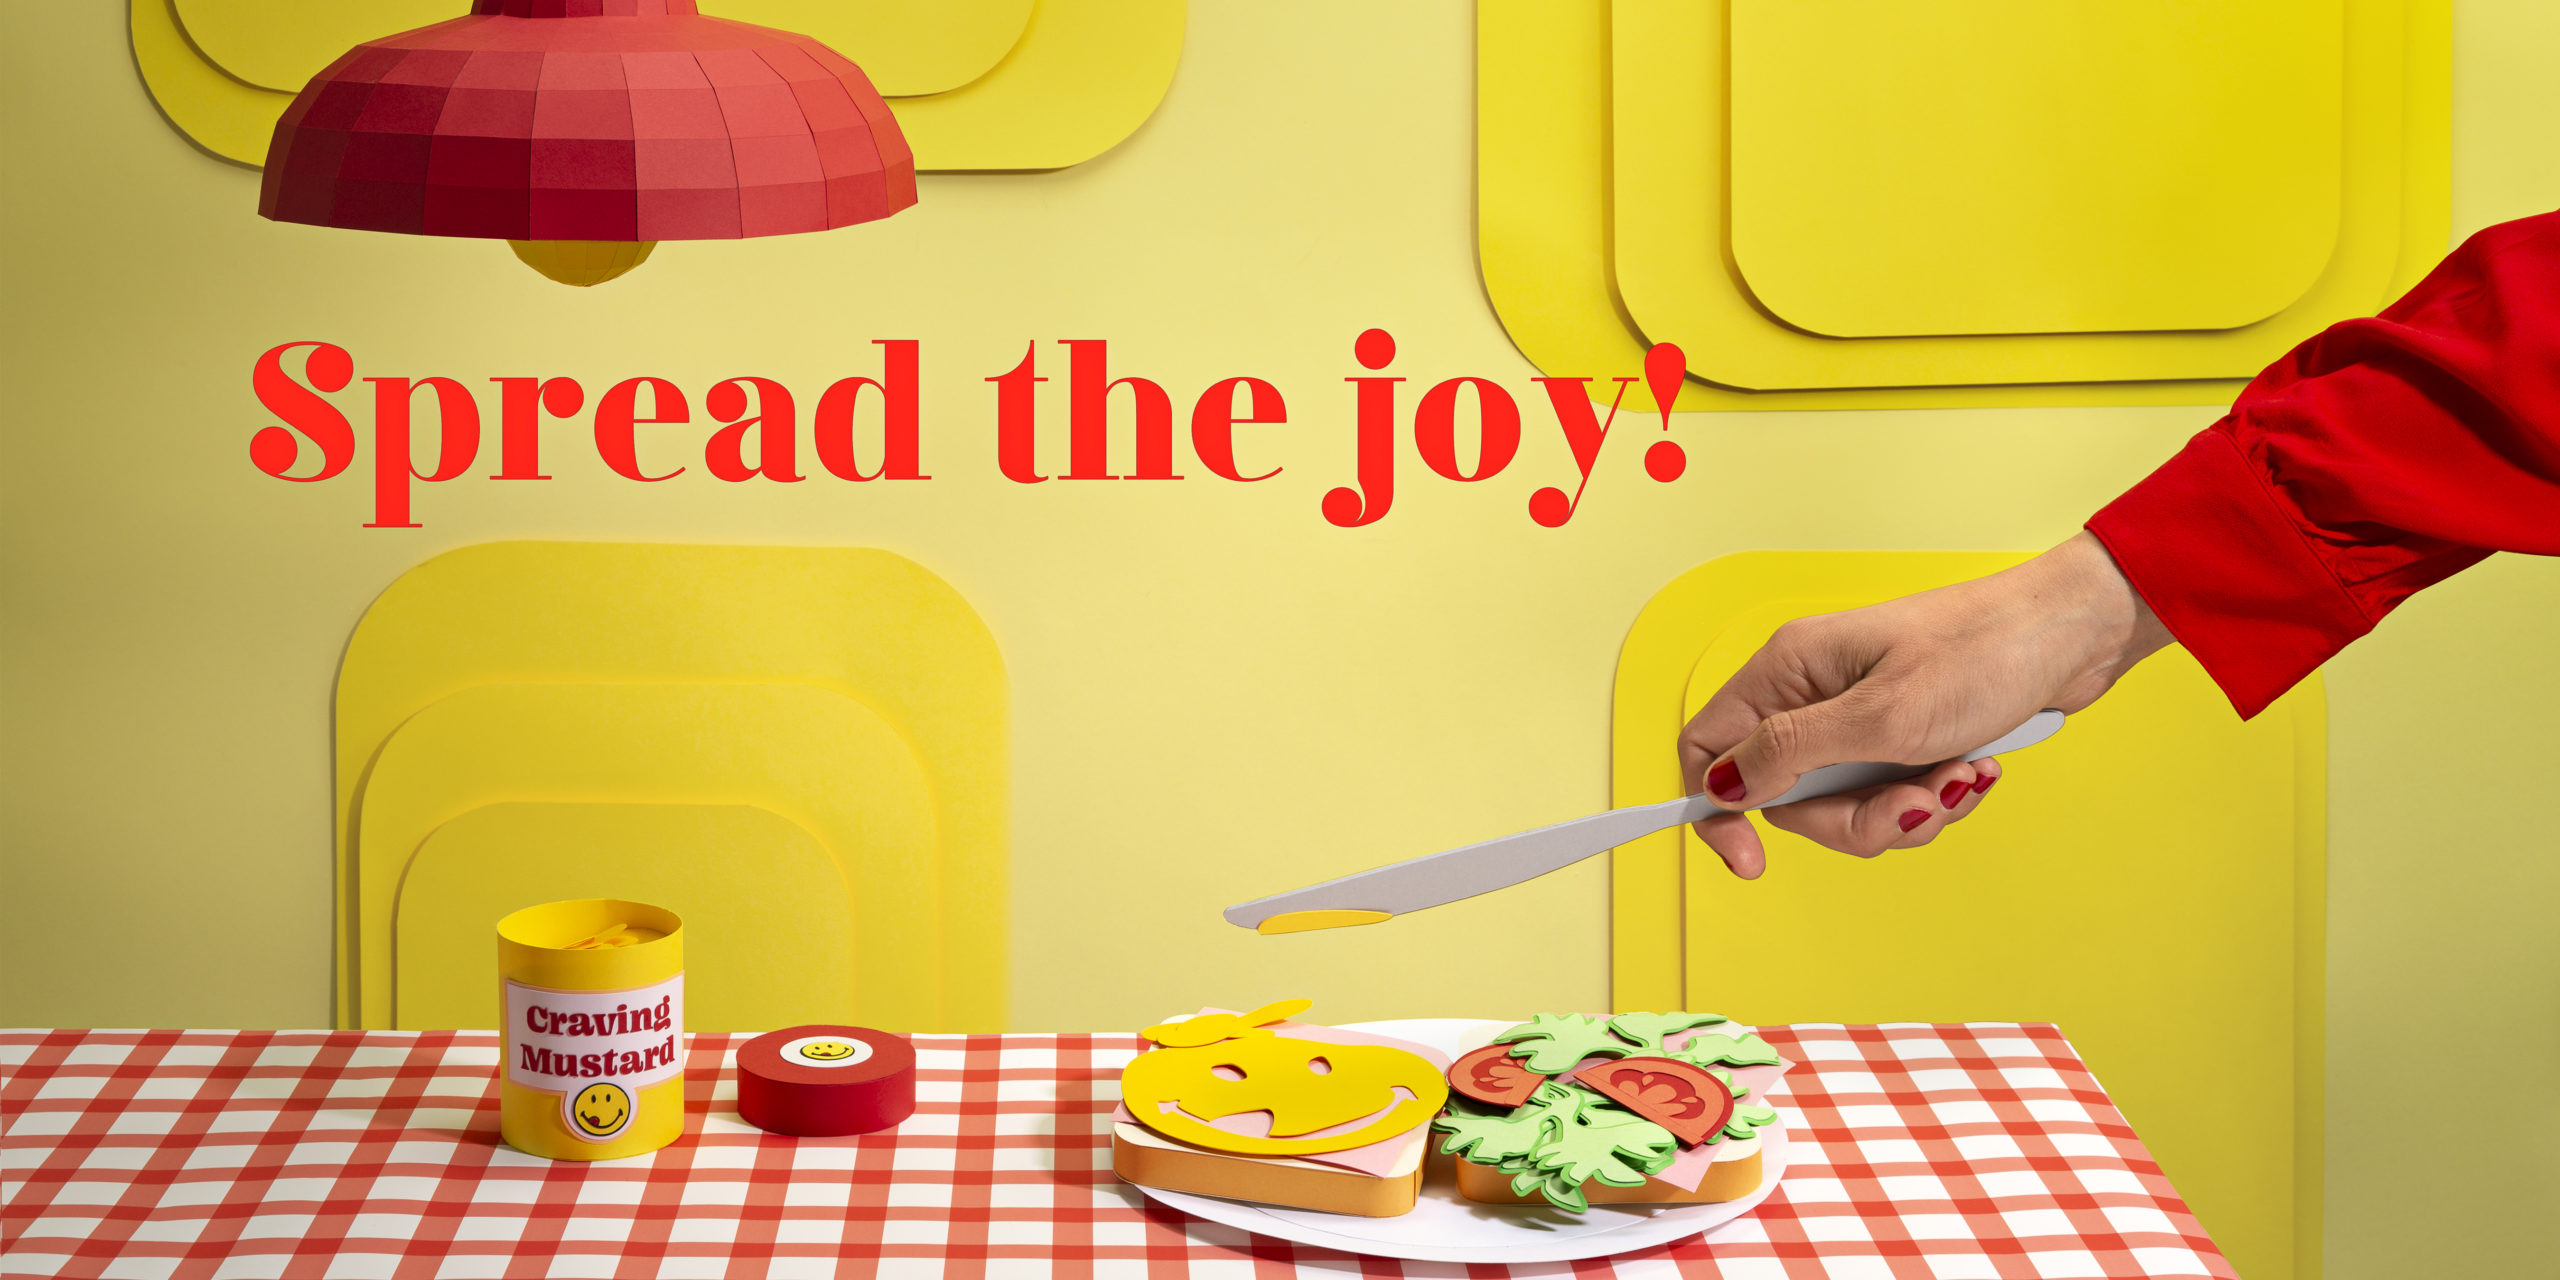 <h1> 70´s: CRAVING MUSTARD – SMILEY & CREATIVE REVIEW </h1>